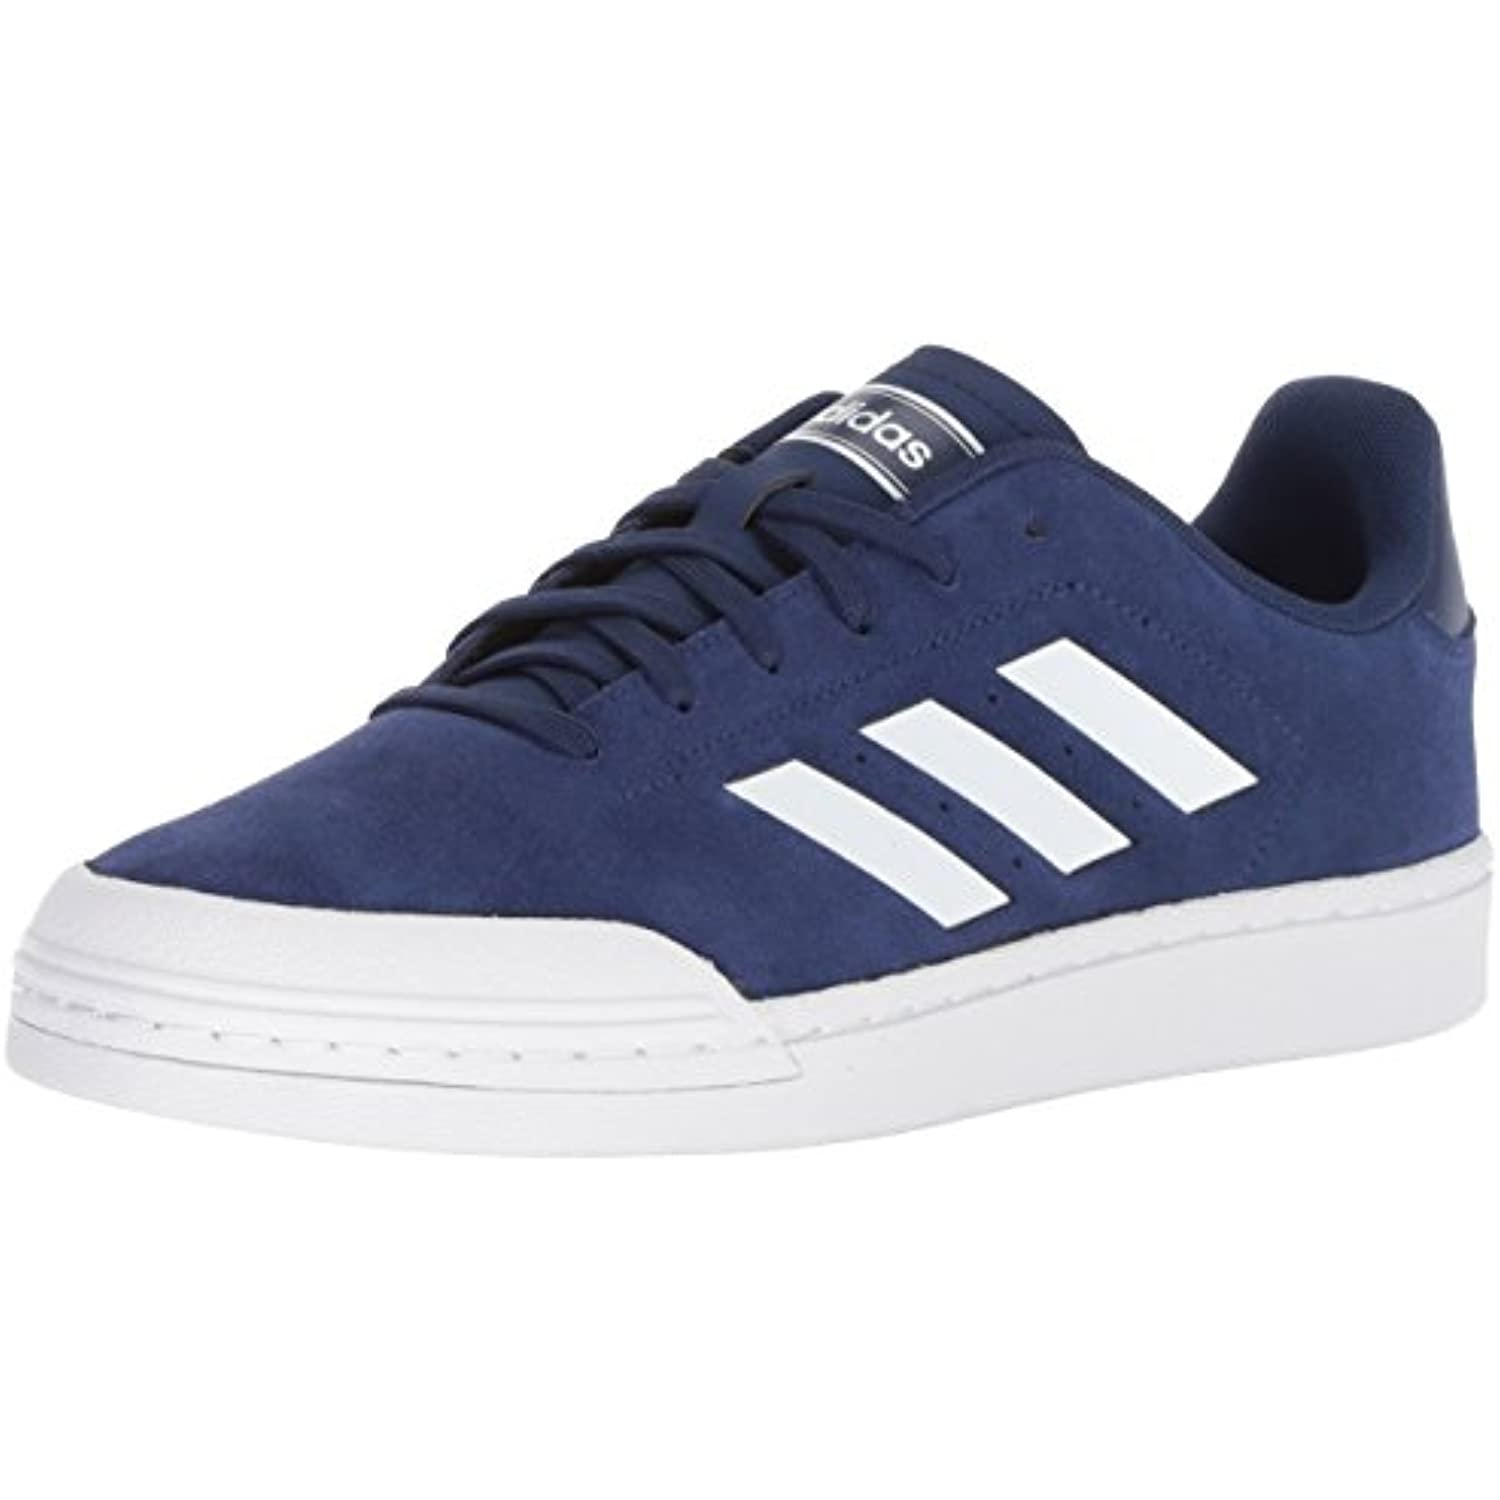 Adidas - Court70s Homme Homme Court70s - B0785FWY5V - 860f22